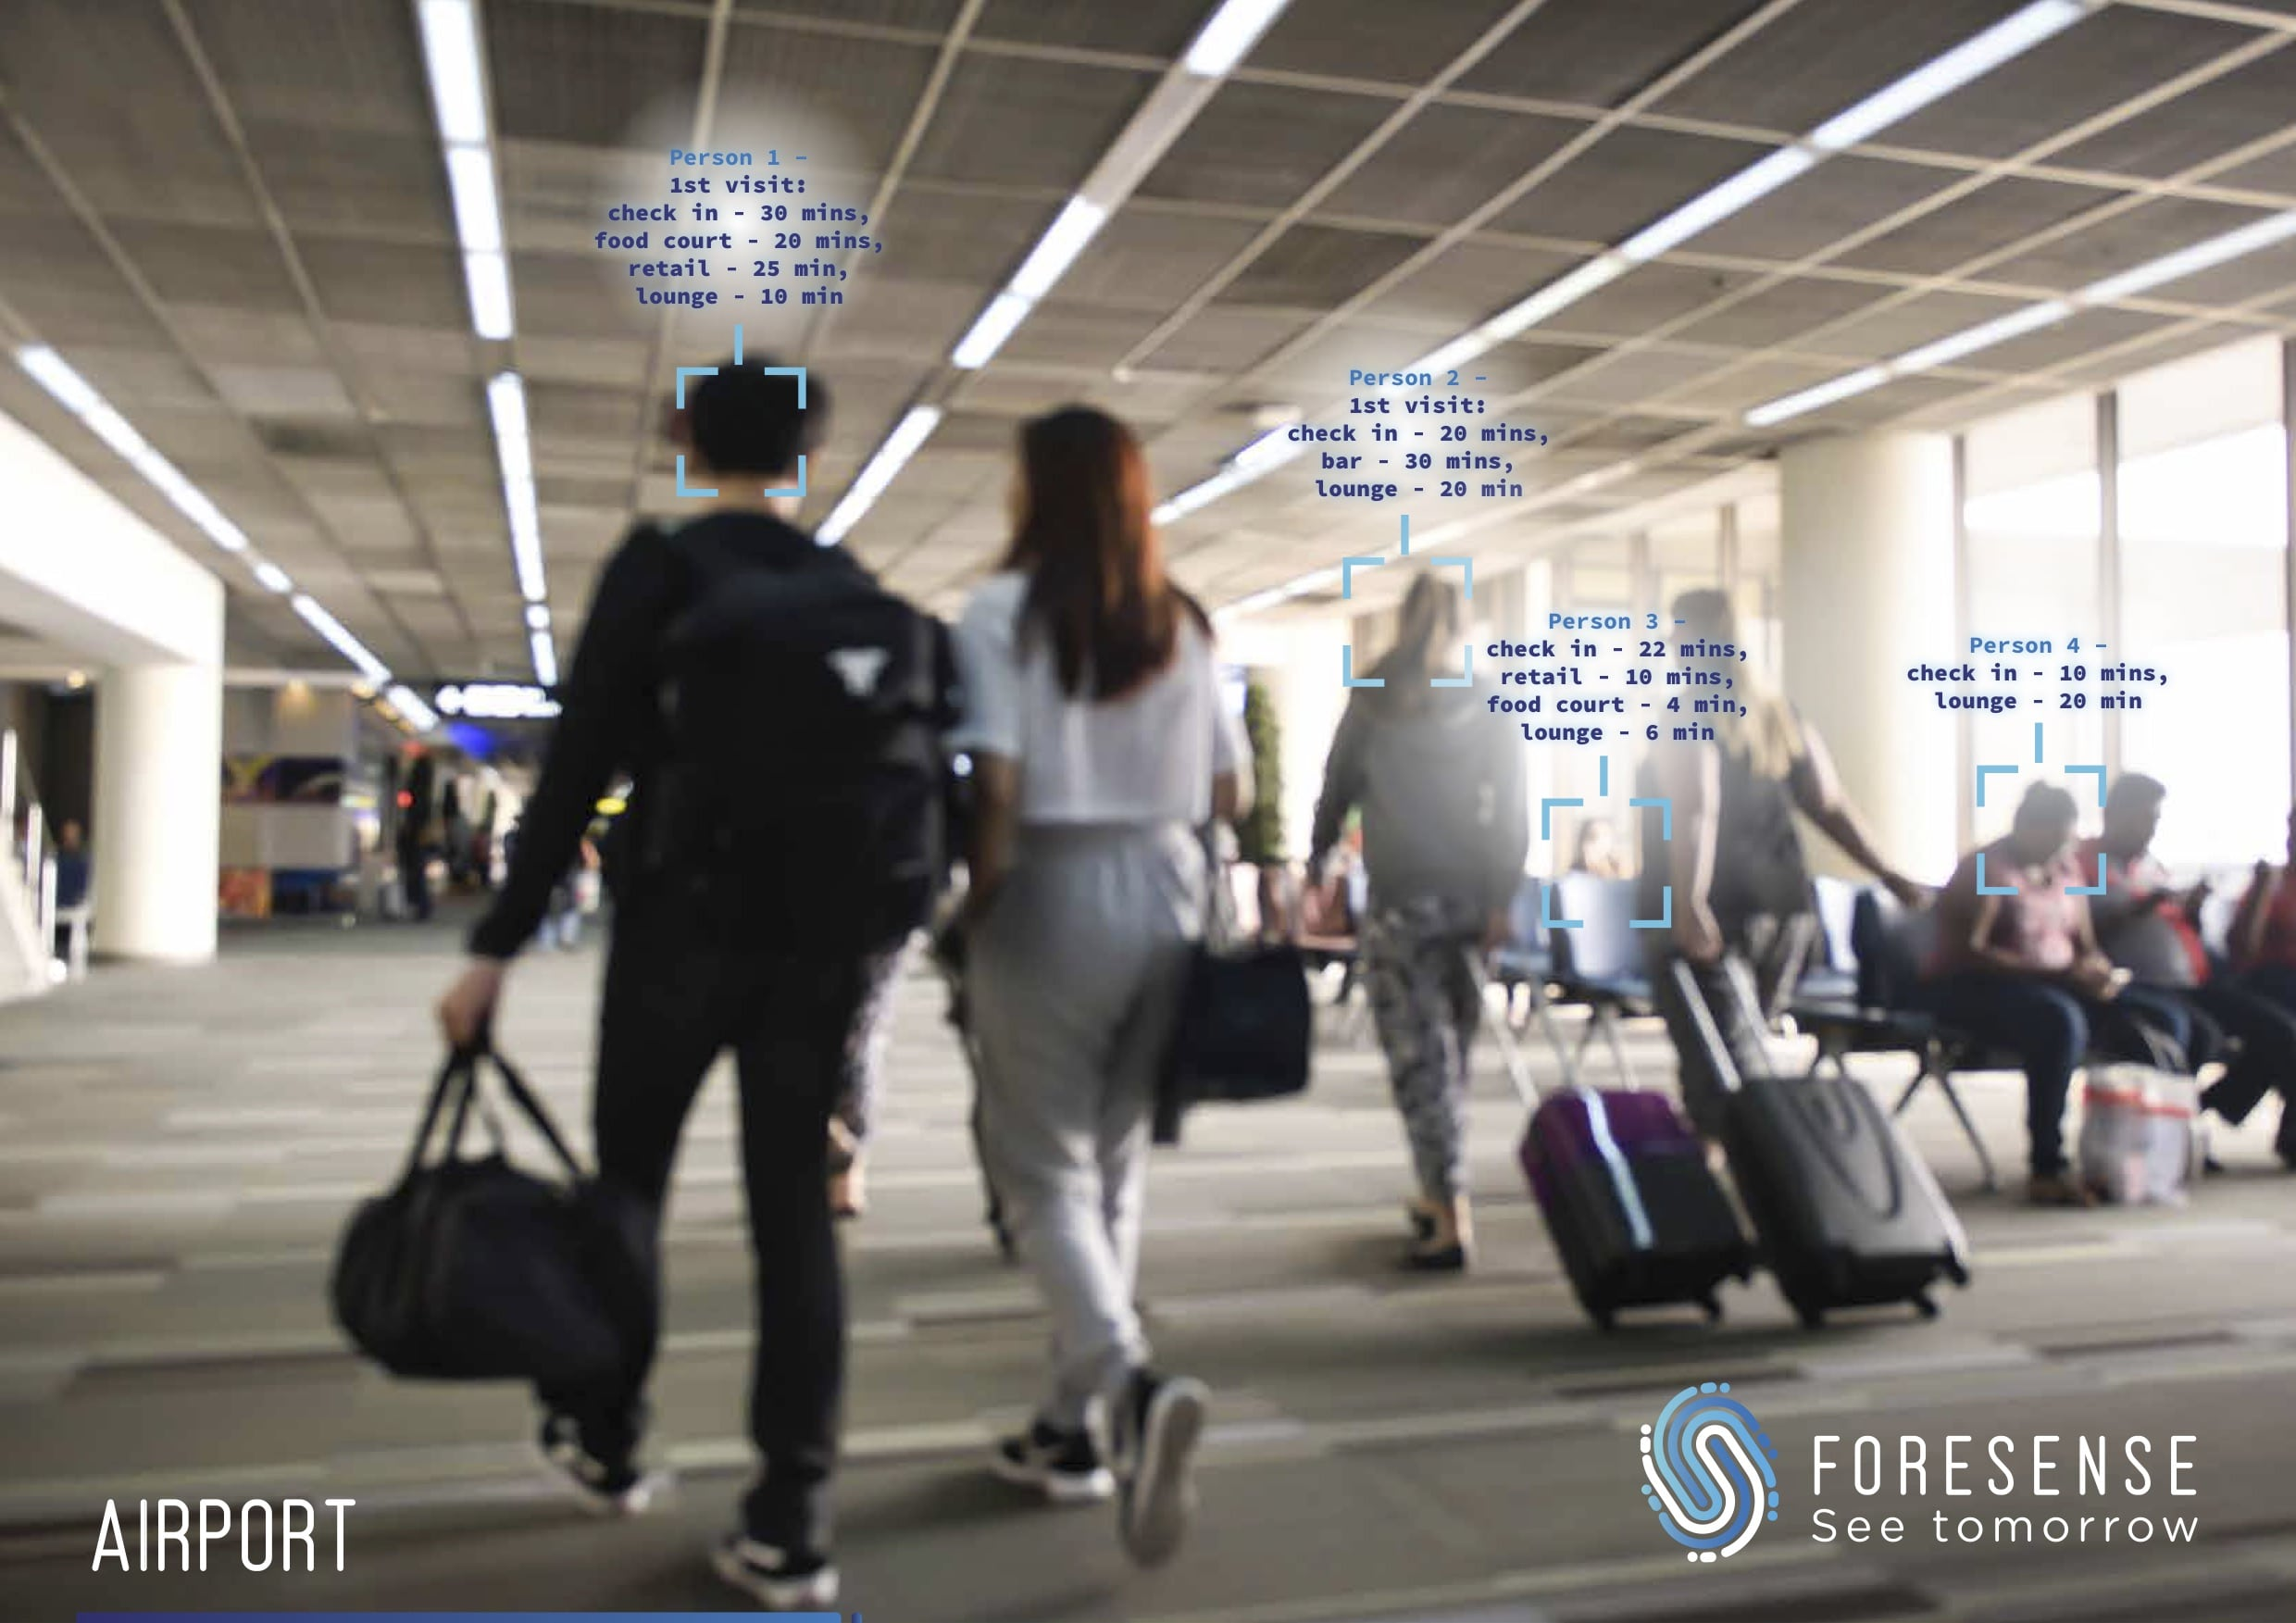 FS_data_posterimage_airport[1]